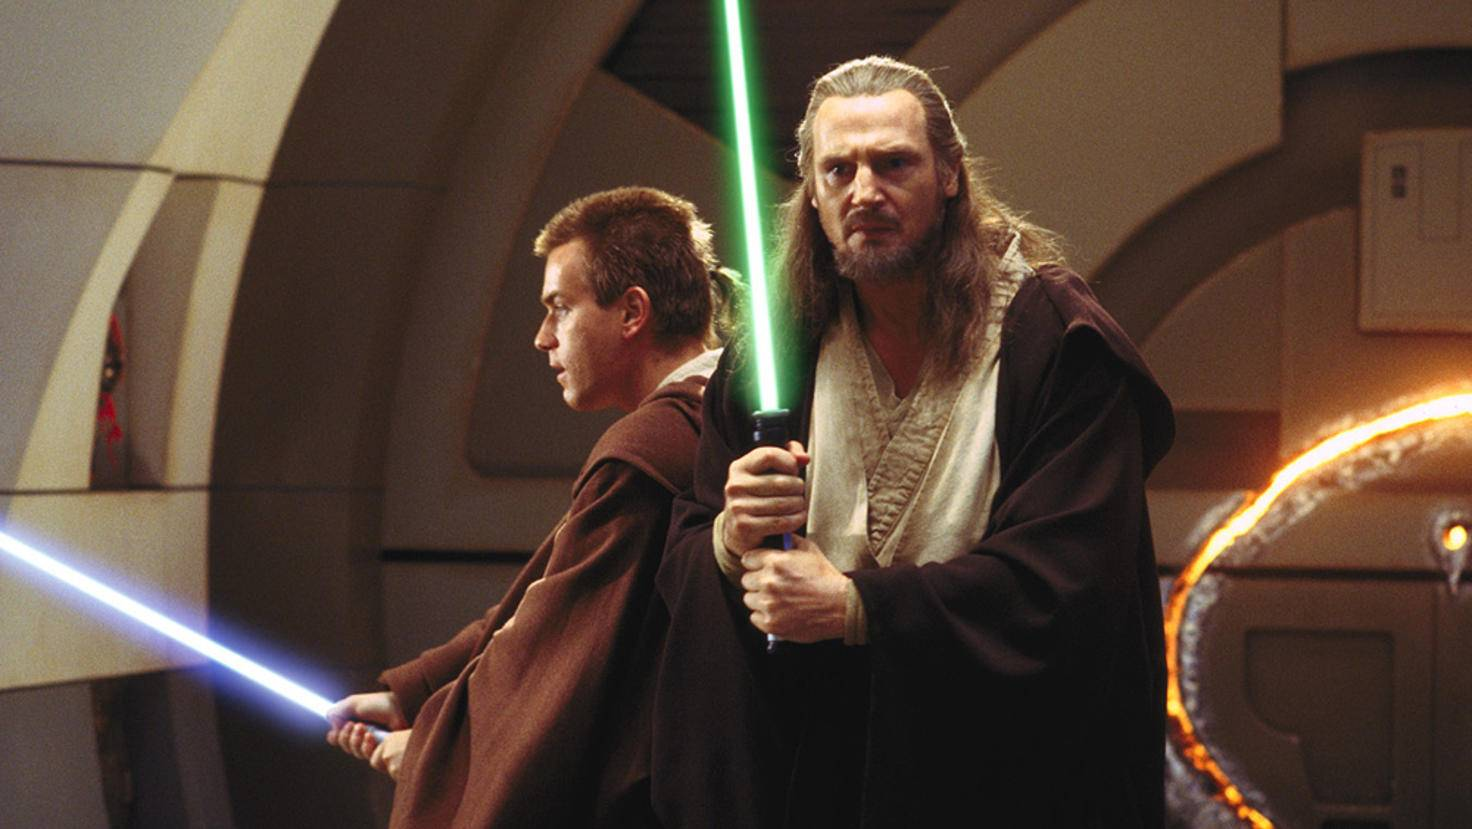 Liam Neeson-Star Wars-picture alliance kpa-7211662